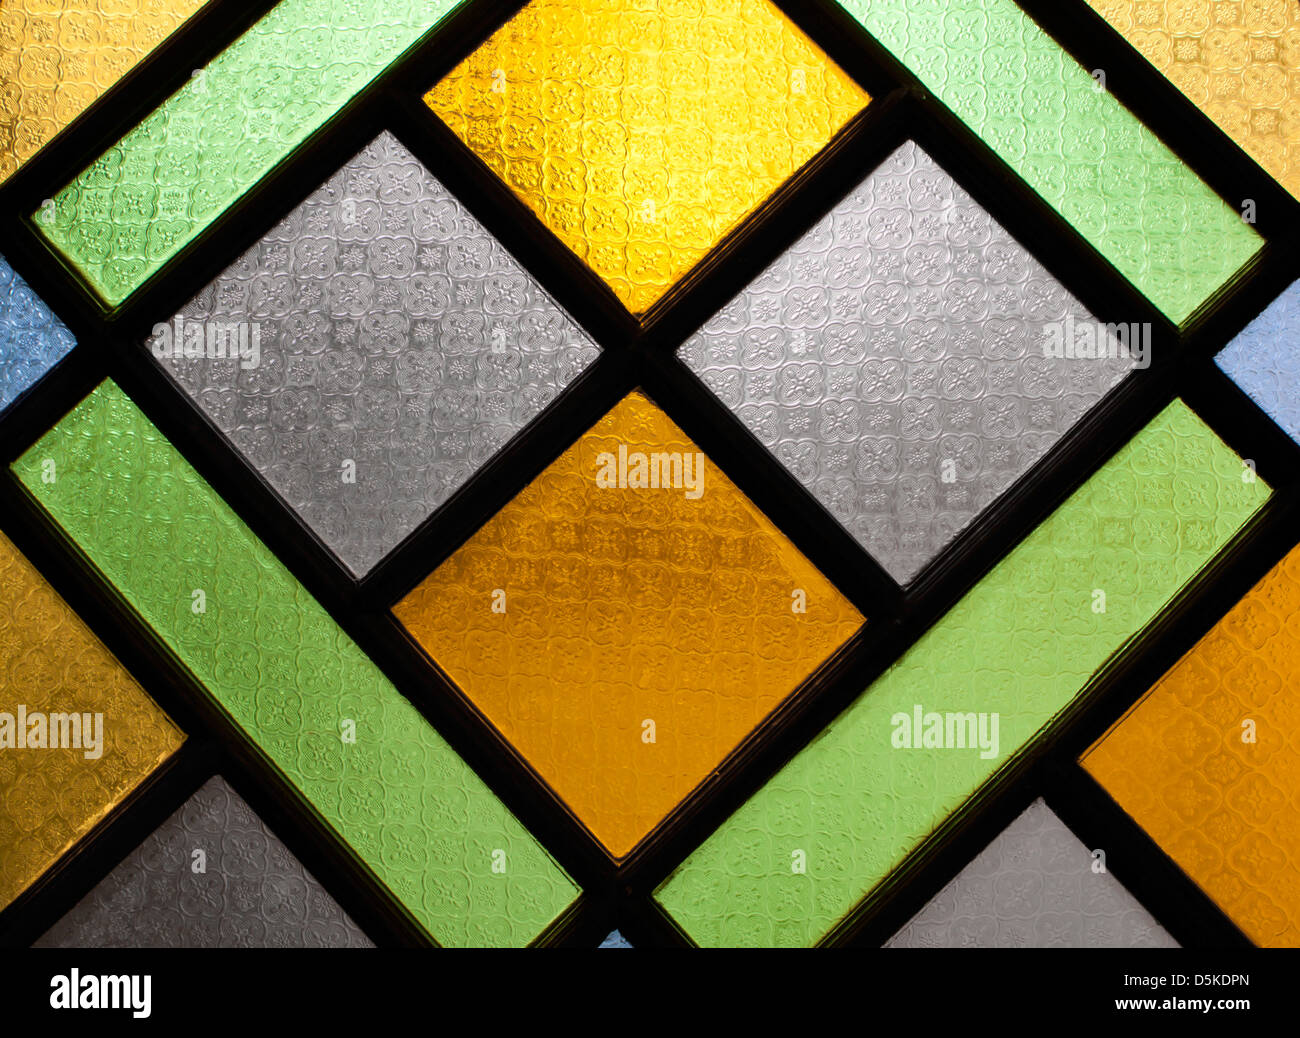 Opaque glass texture for the background color. - Stock Image